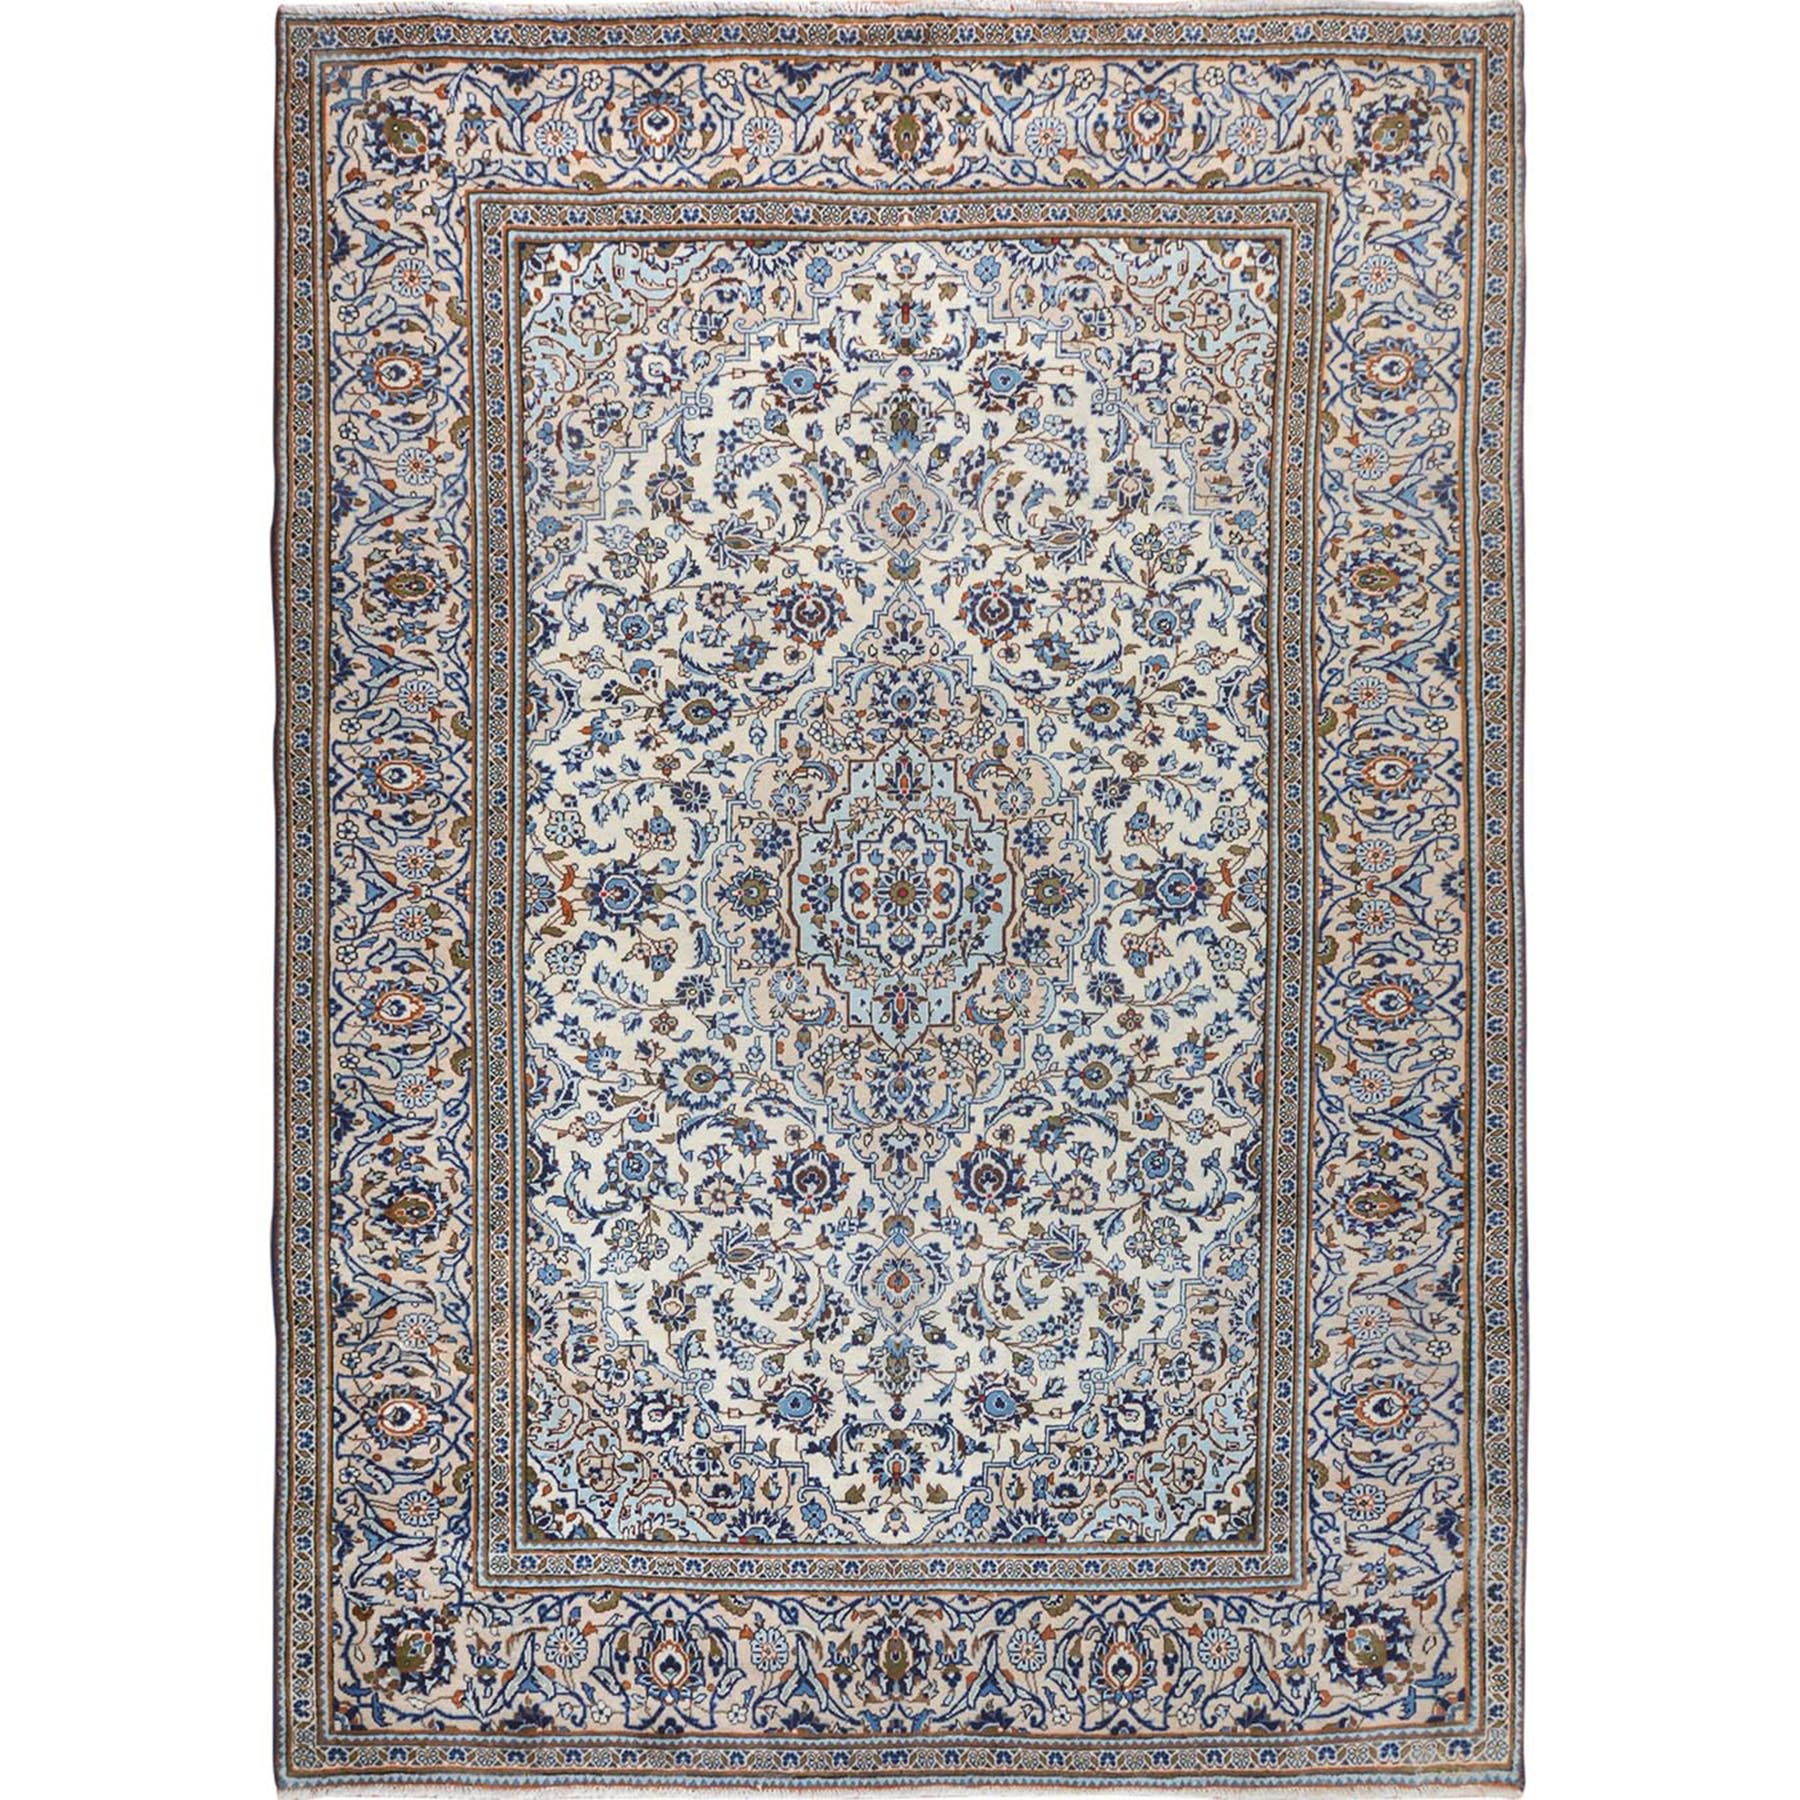 8'X11' Ivory Persian Kashan Medallion Exc Cond Clean Semi Antique Full Pile Hand Knotted Pure Wool Oriental Rug moae7c80